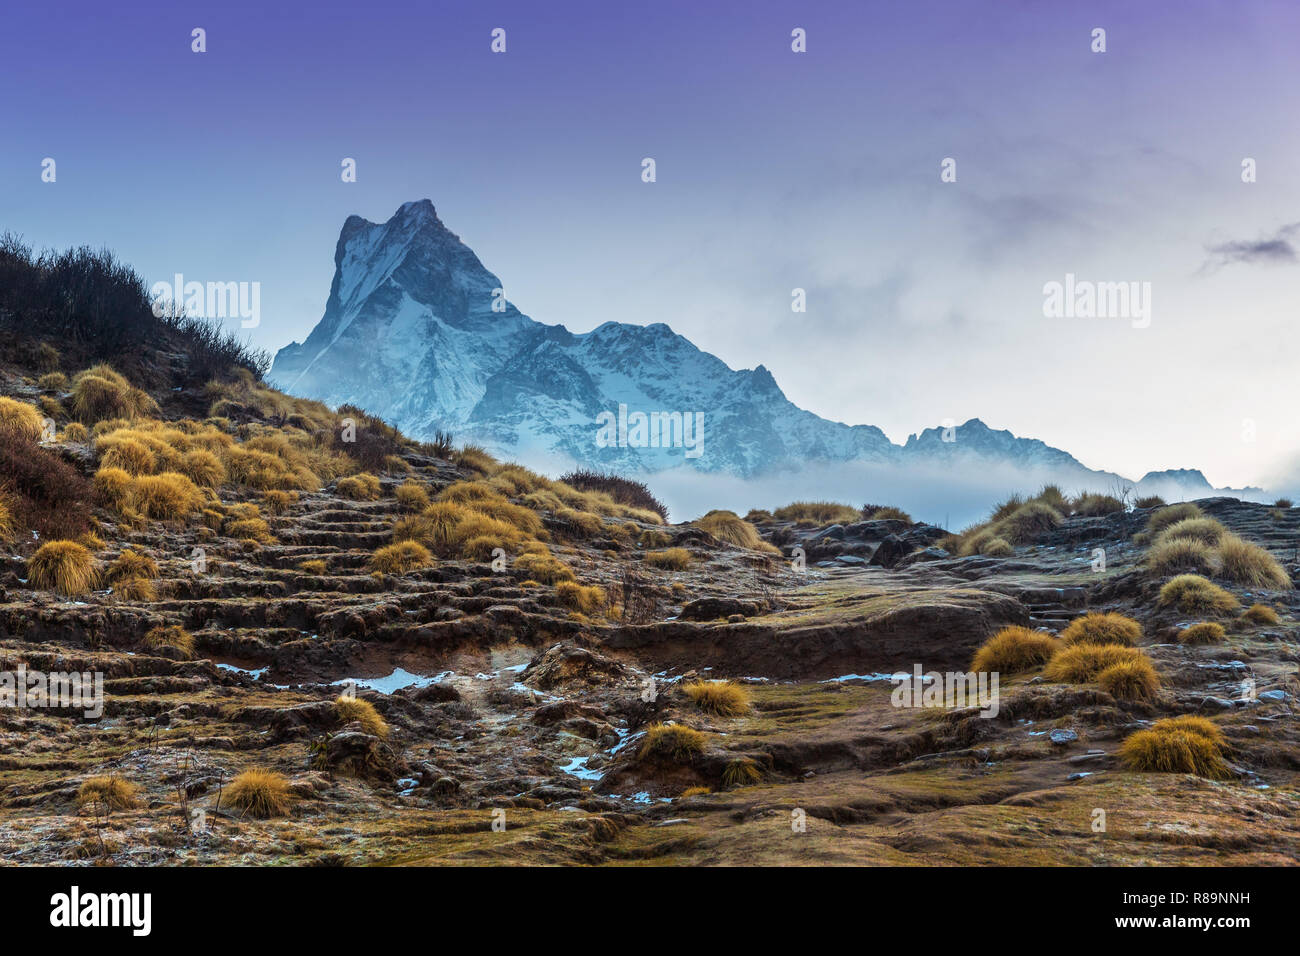 View of Machapuchare Mountain, Fishtail Peak, on Mardi Himal trail in the Annapurna Himal, Nepal, Himalayas, Asia - Stock Image